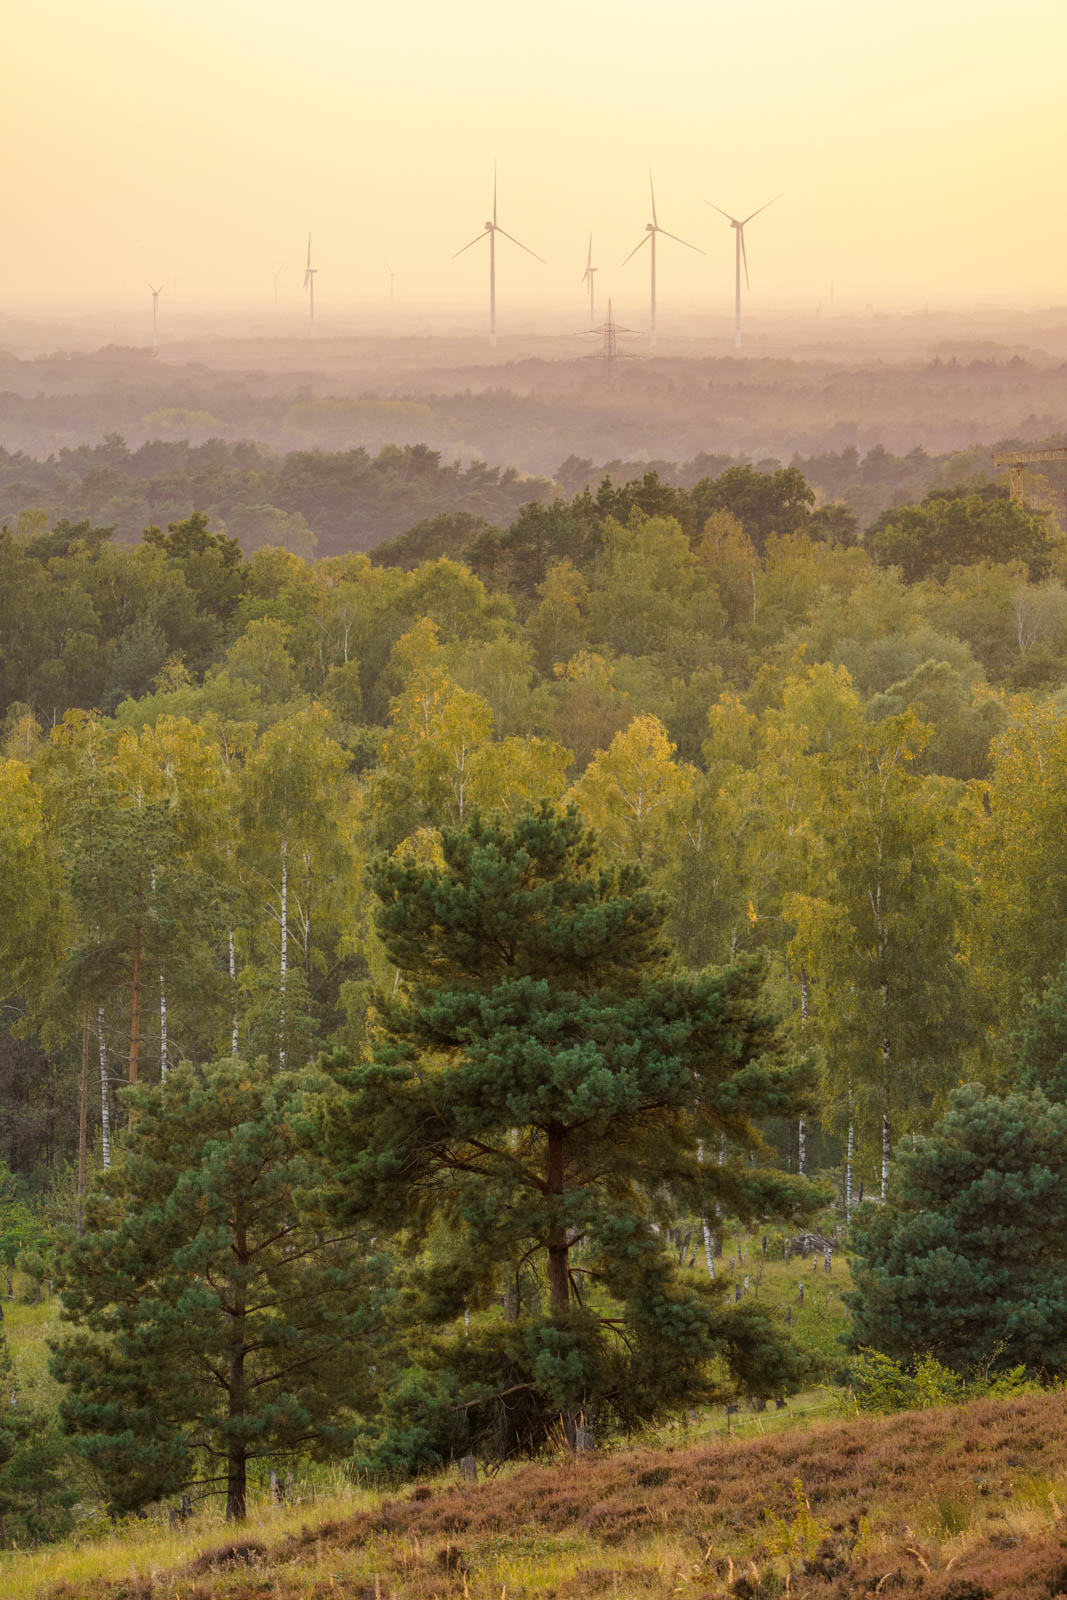 Wind turbines in the Teutoburg Forest at dusk in September 2020 (Oerlinghausen, Germany).